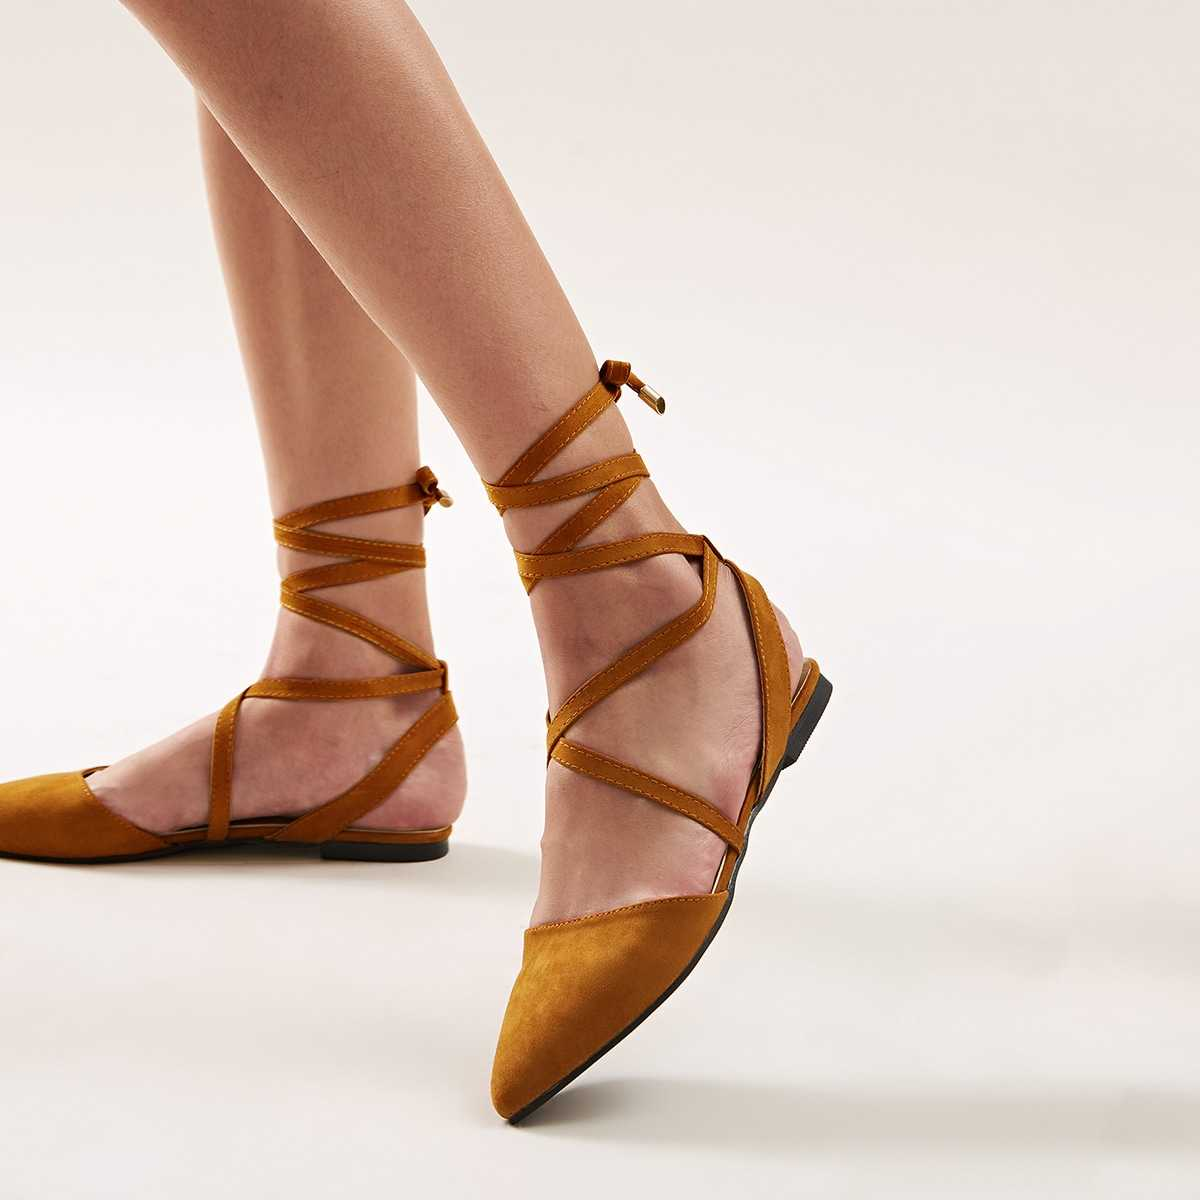 Point Toe Tie Leg Ballet Flats in Brown by ROMWE on GOOFASH